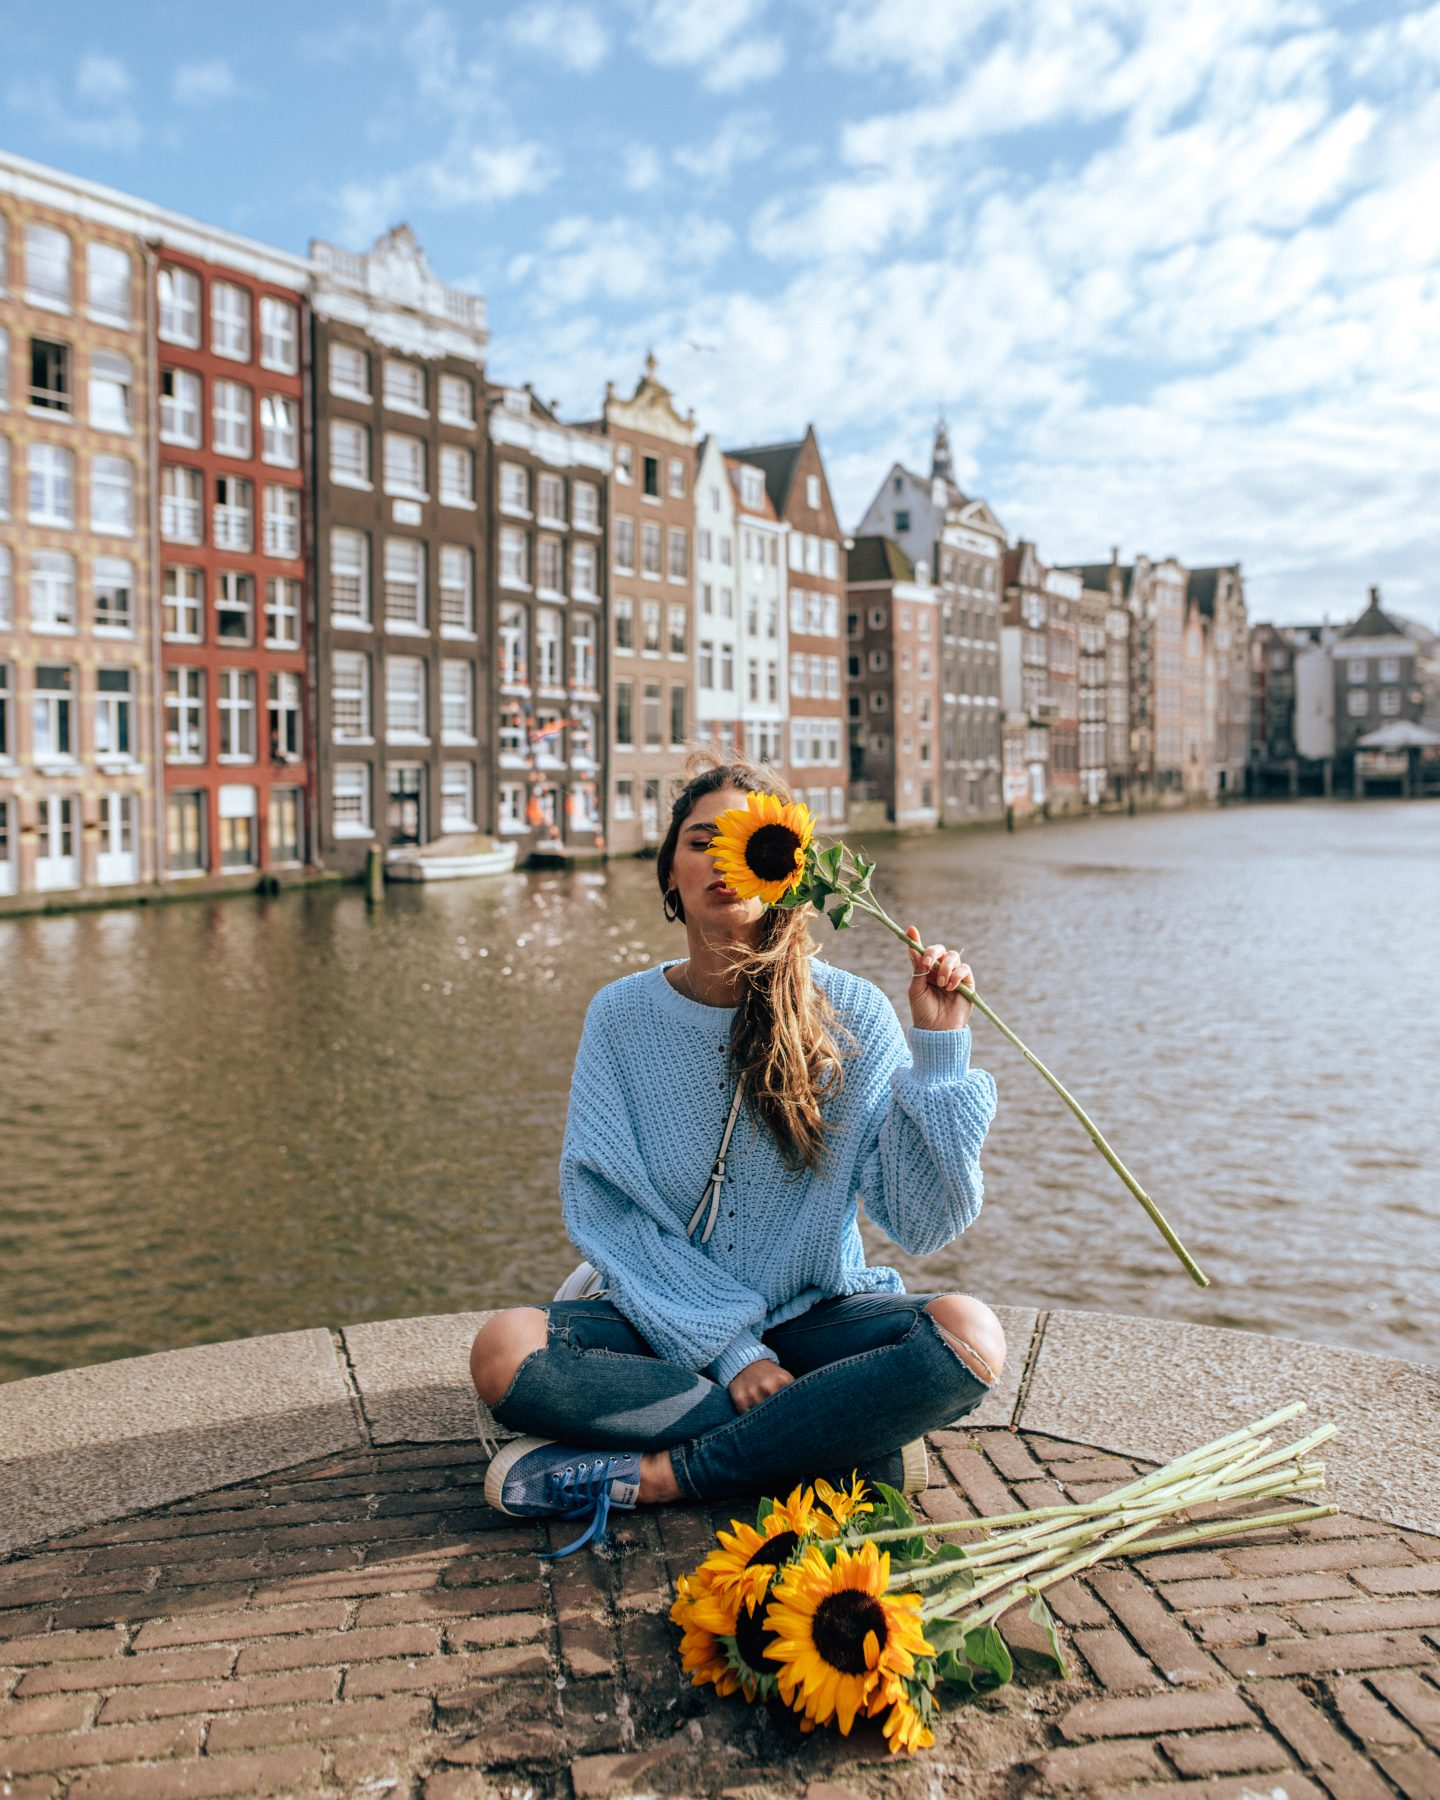 Using sunflowers as a prop to help with posing for Instagram pictures in Amsterdam